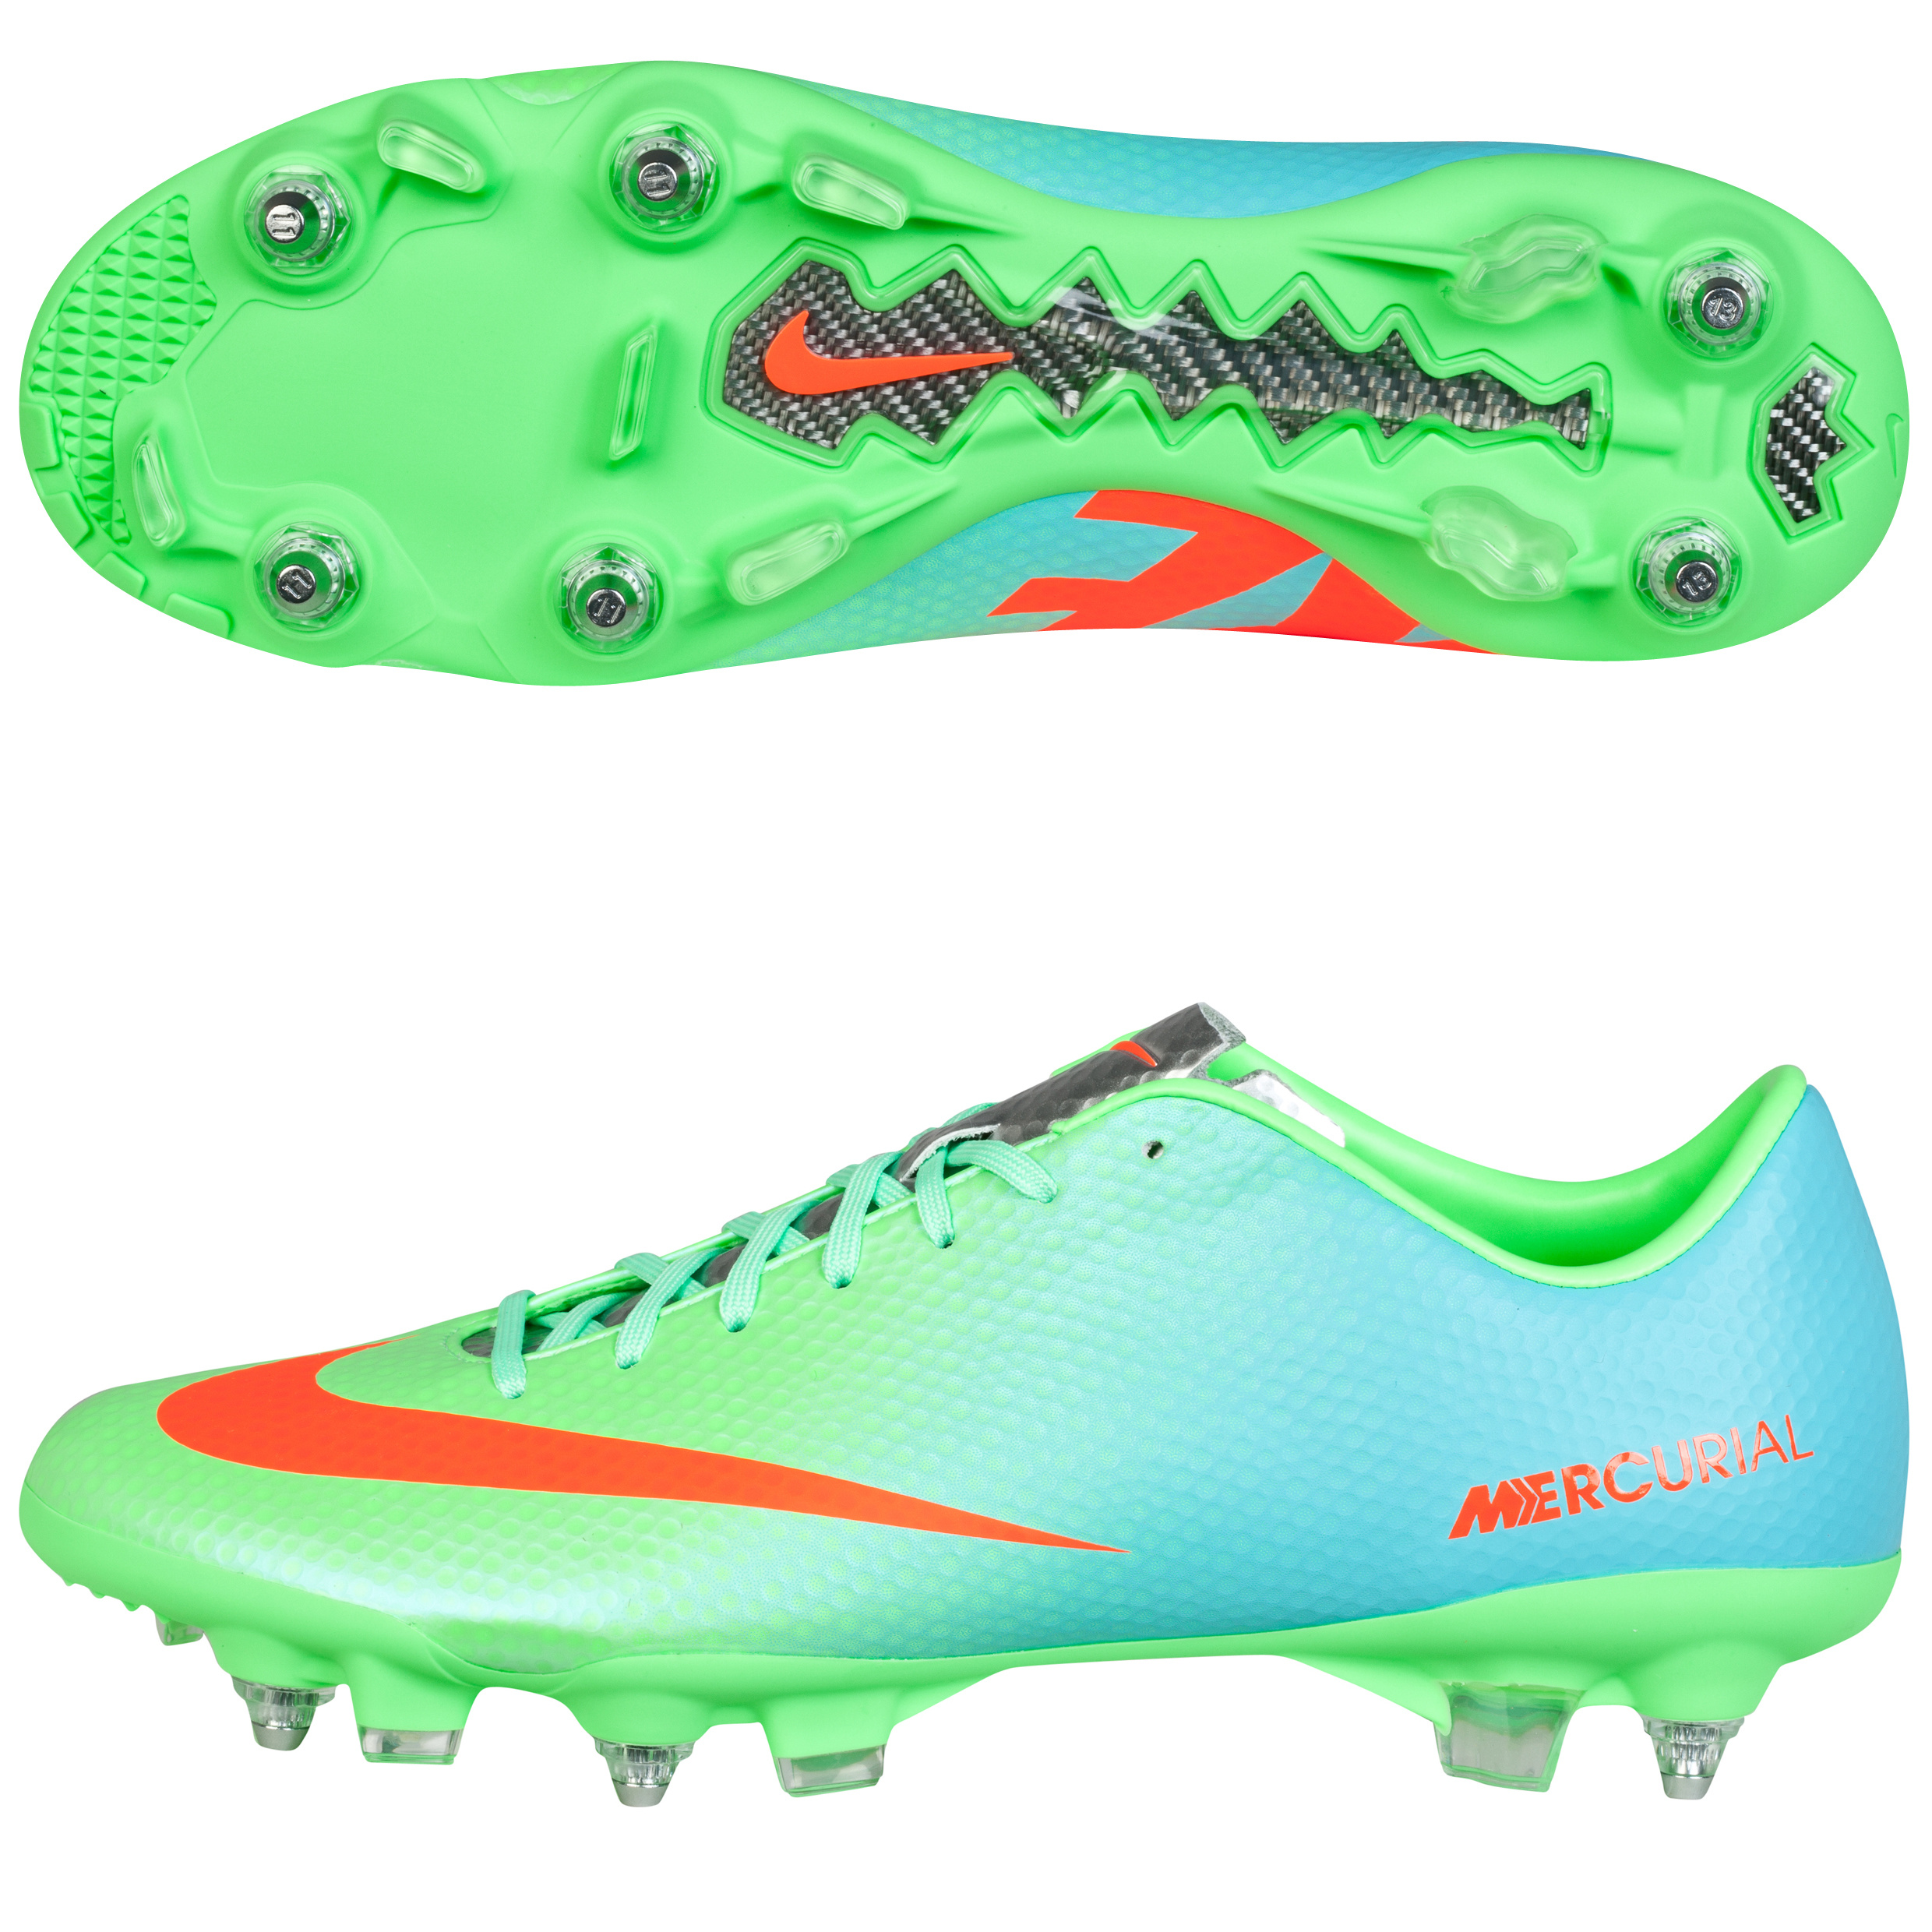 Nike Mercurial Veloce Soft Ground Football Boots Green